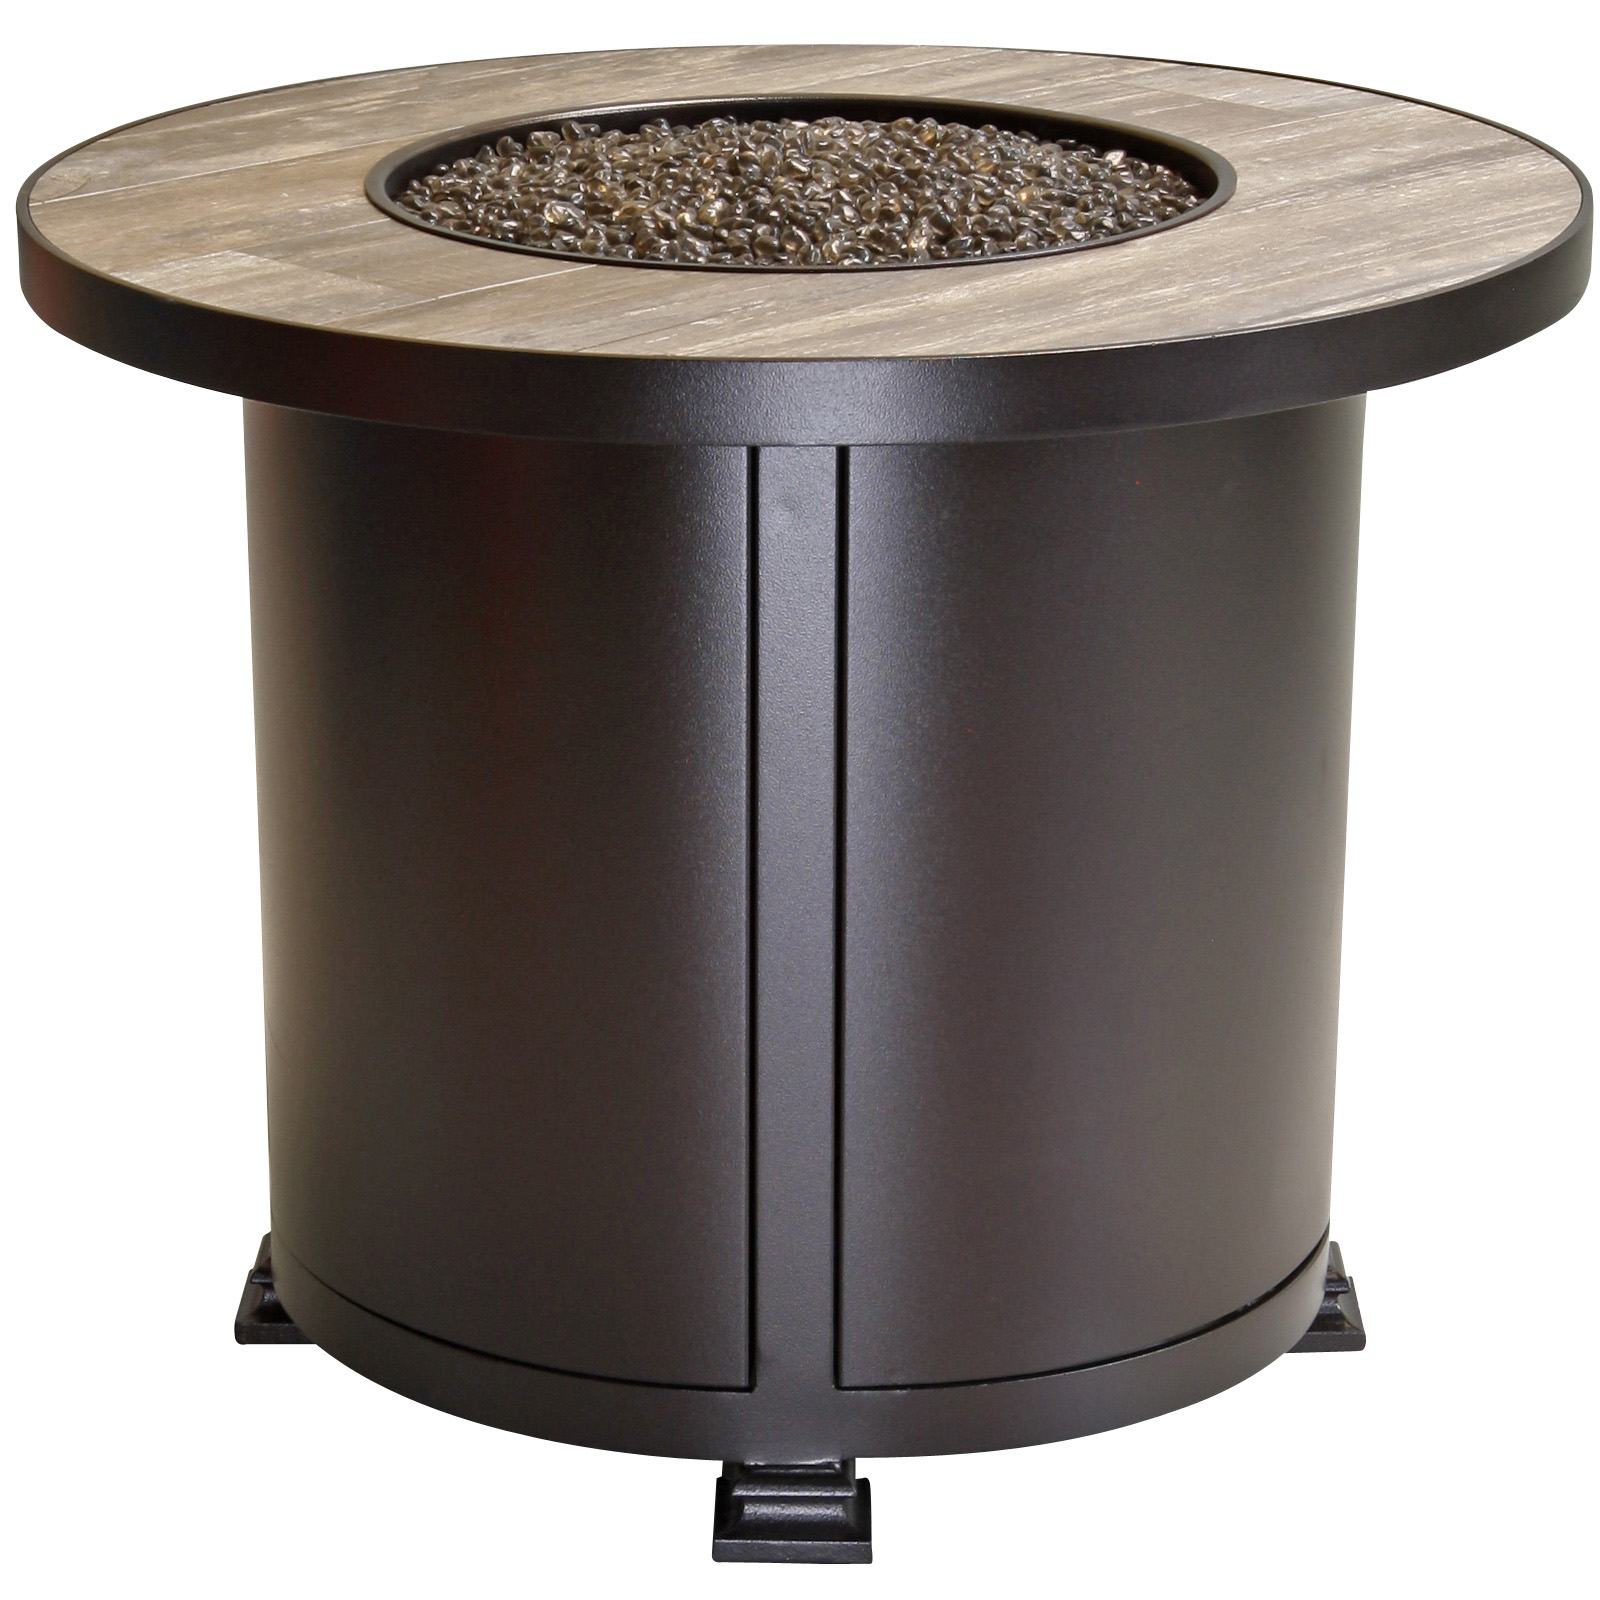 Ow Lee Santorini 30 Quot Round Chat Height Fire Pit Table 51 21a